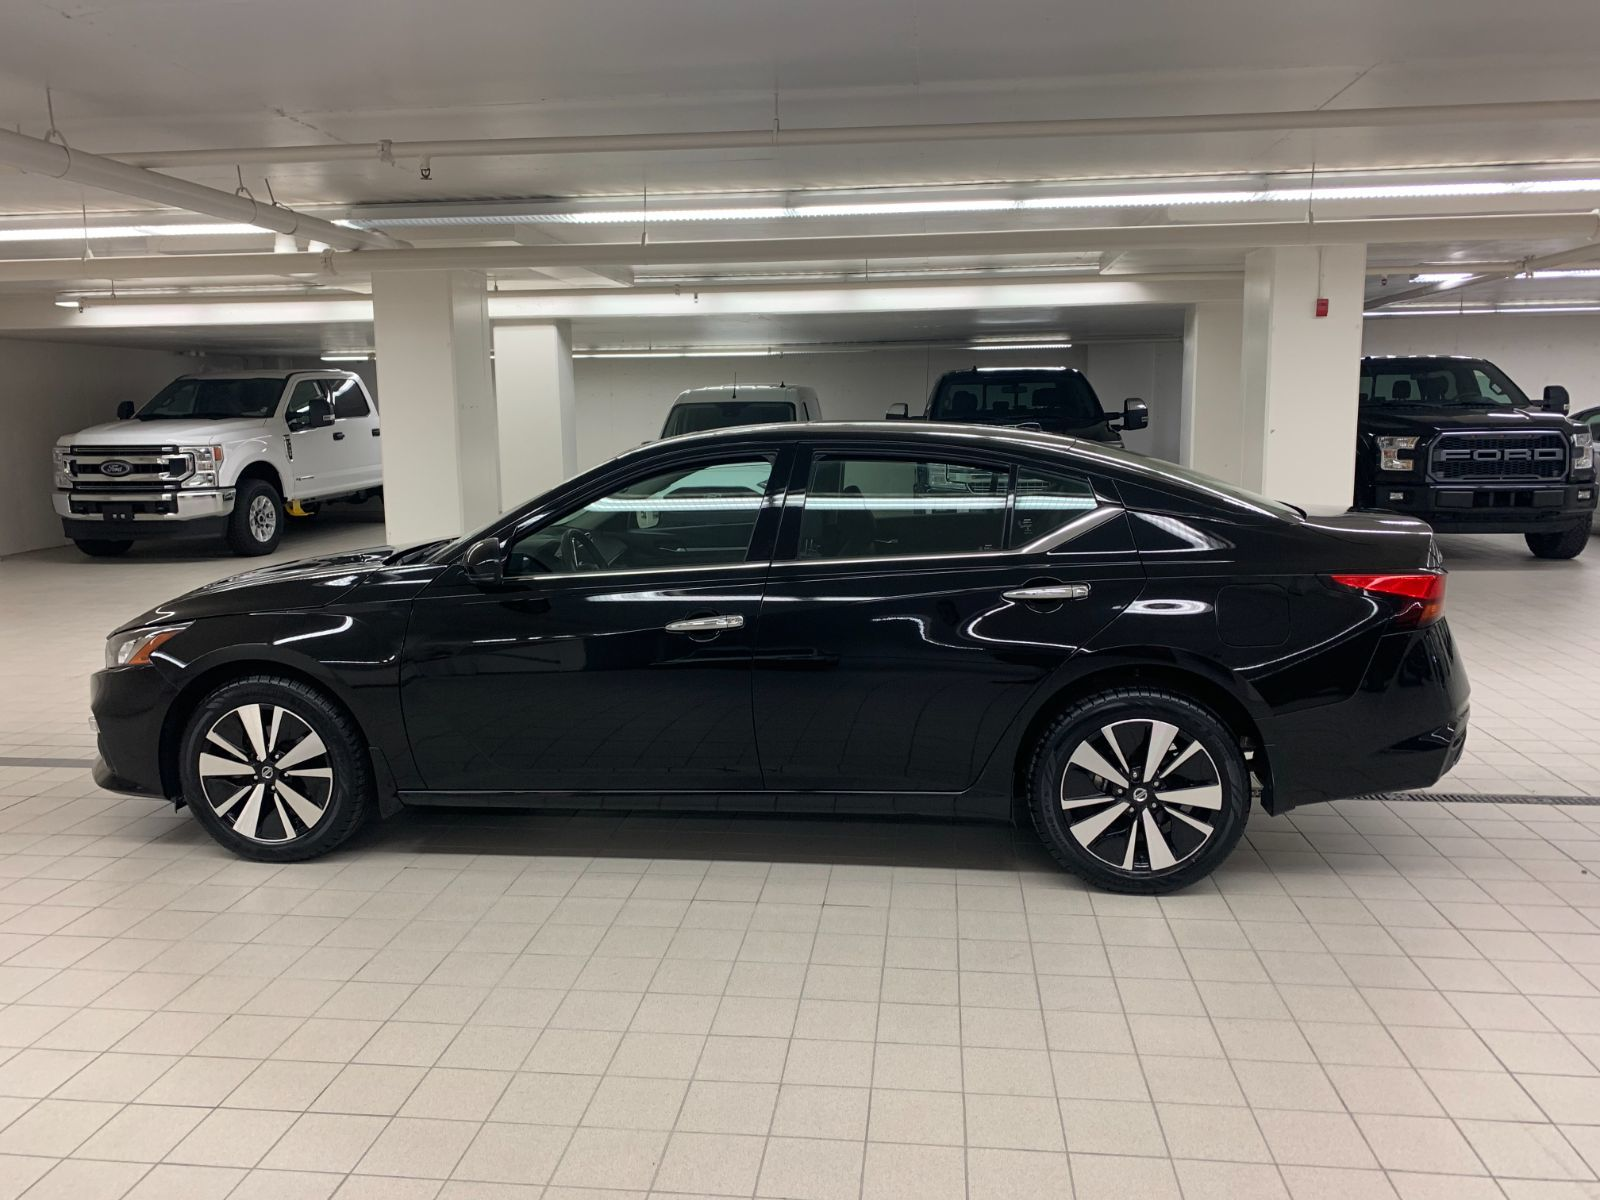 2019 Nissan Altima complet